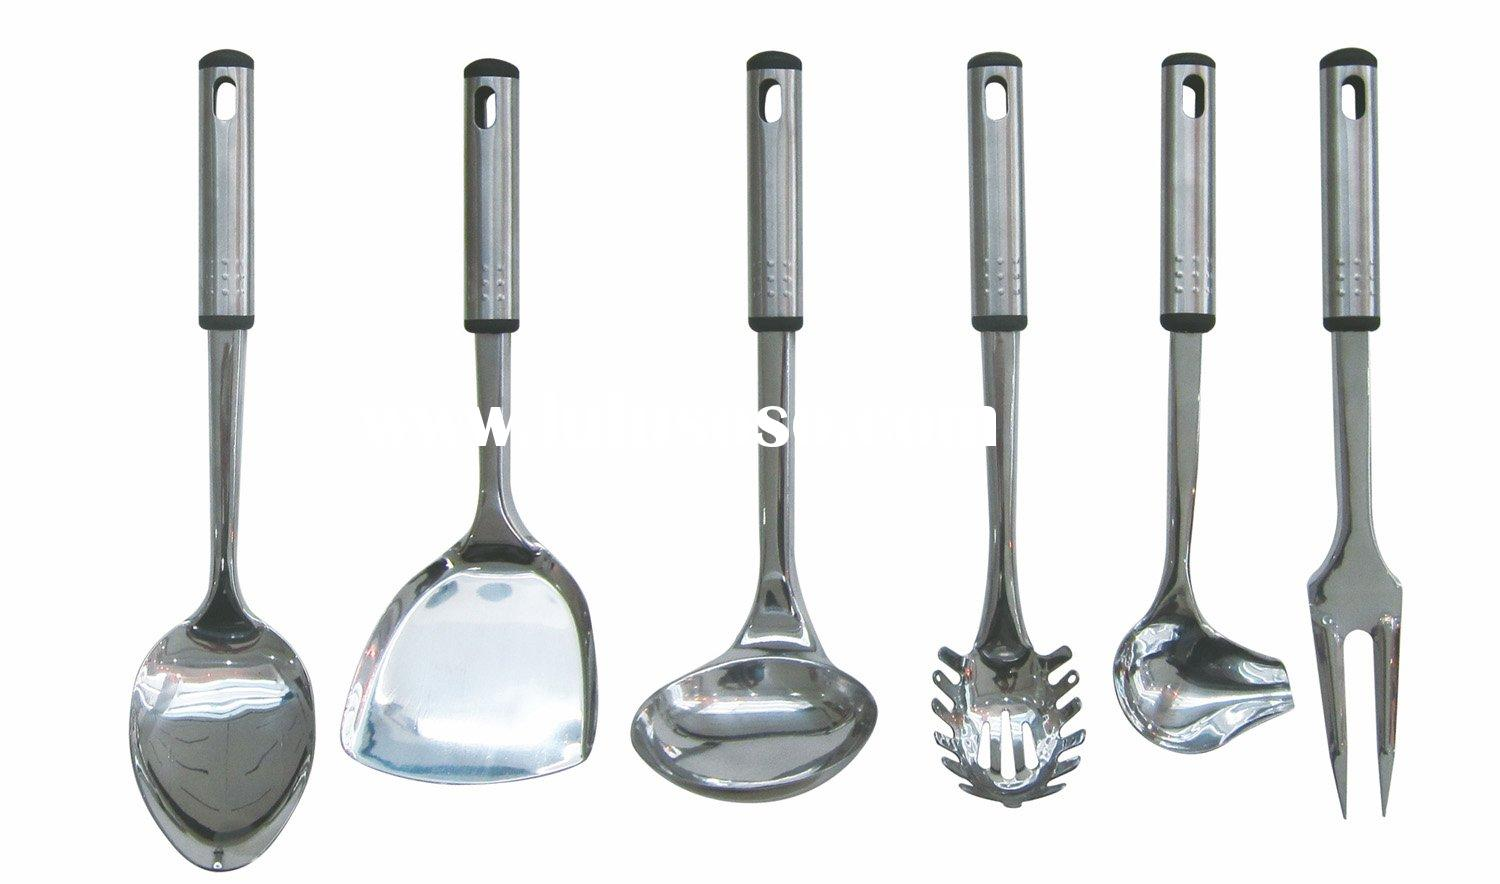 Stainless Steel Cooking Utensils Images